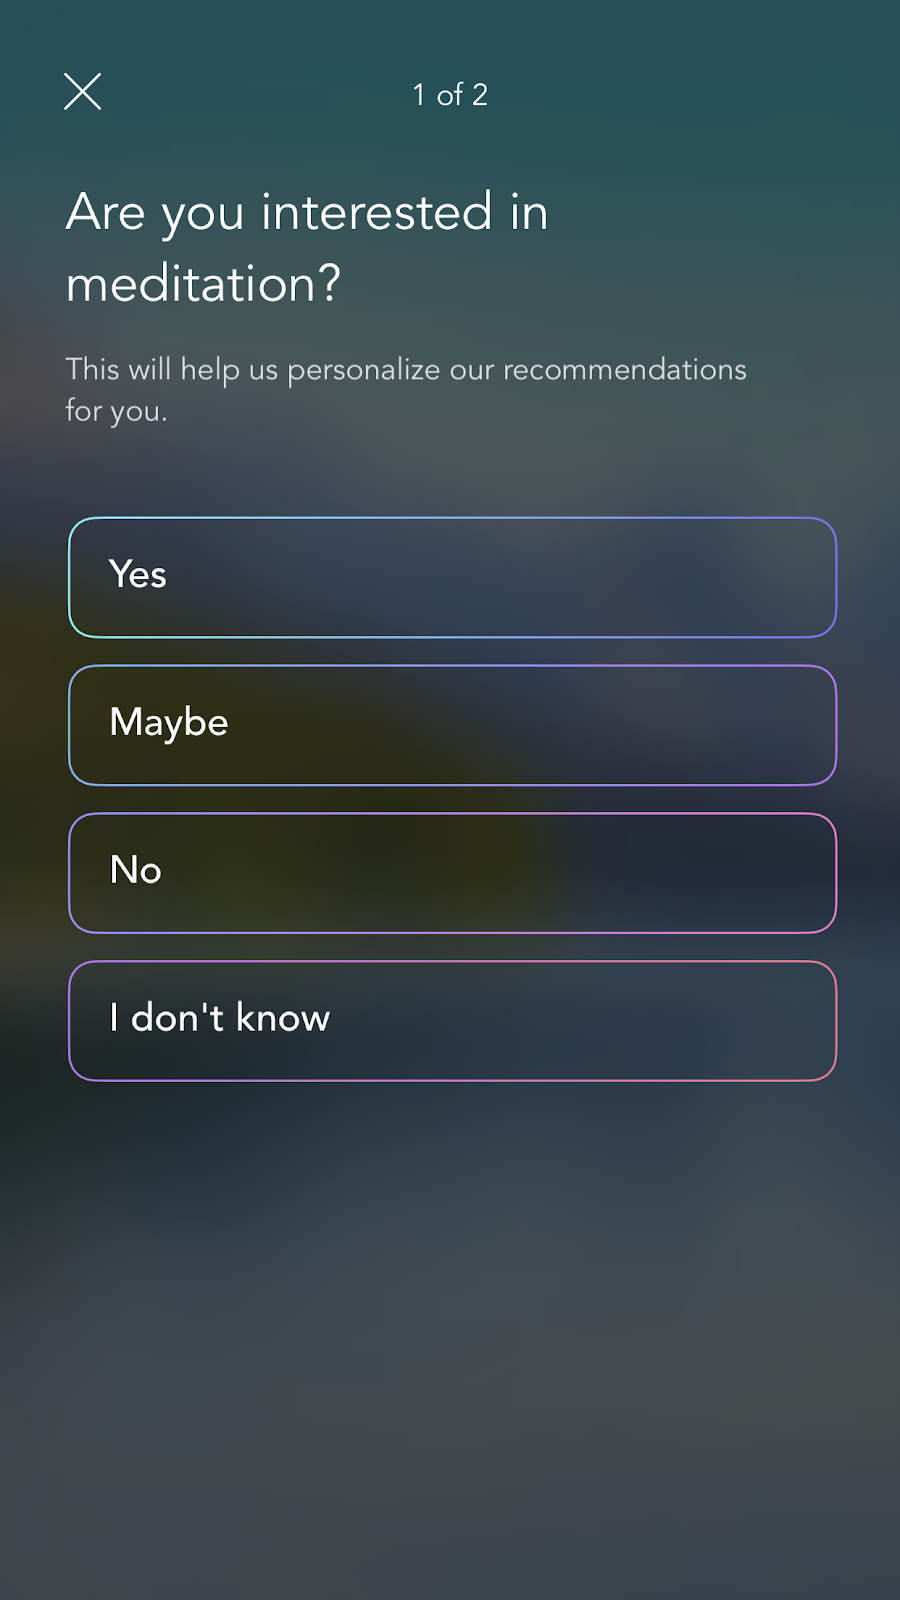 mobile screenshot from mindfulness app Calm. this screen shows further personalization questions